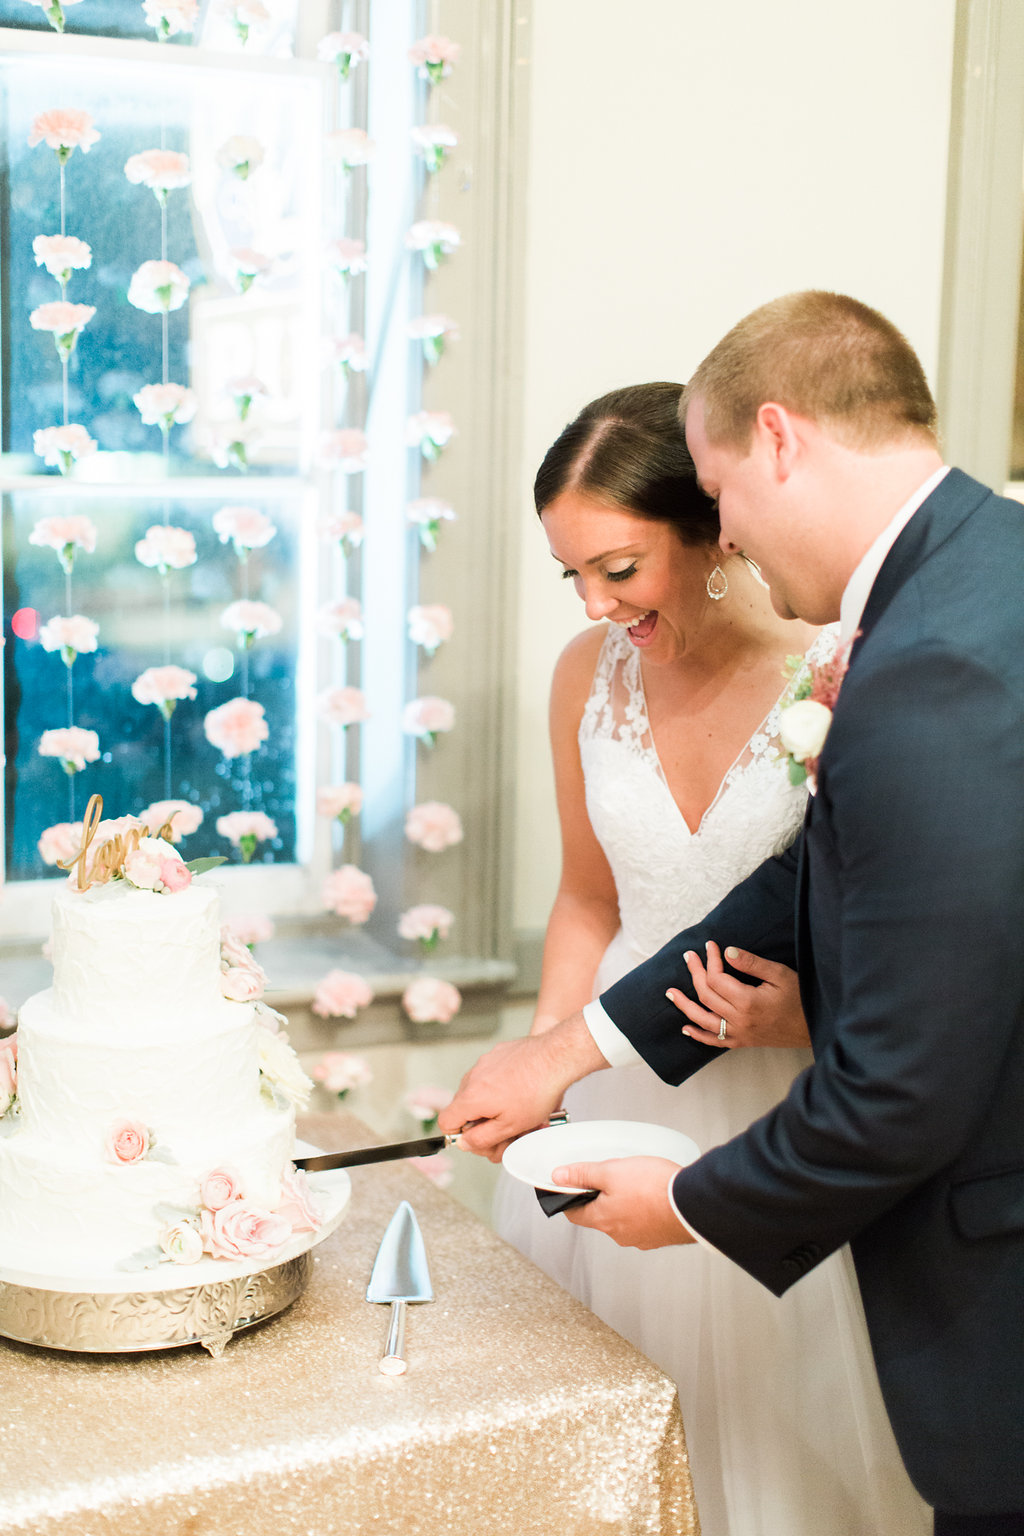 the-happy-bloom-photography-ivory-and-beau-wedding-planning-ivory-and-beau-bridal-boutique-whitfield-chapel-wedding-10-downing-wedding-savannah-wedding-historic-savannah-wedding-savannah-wedding-planner-savannah-weddings-a-to-zinnias-55.jpg